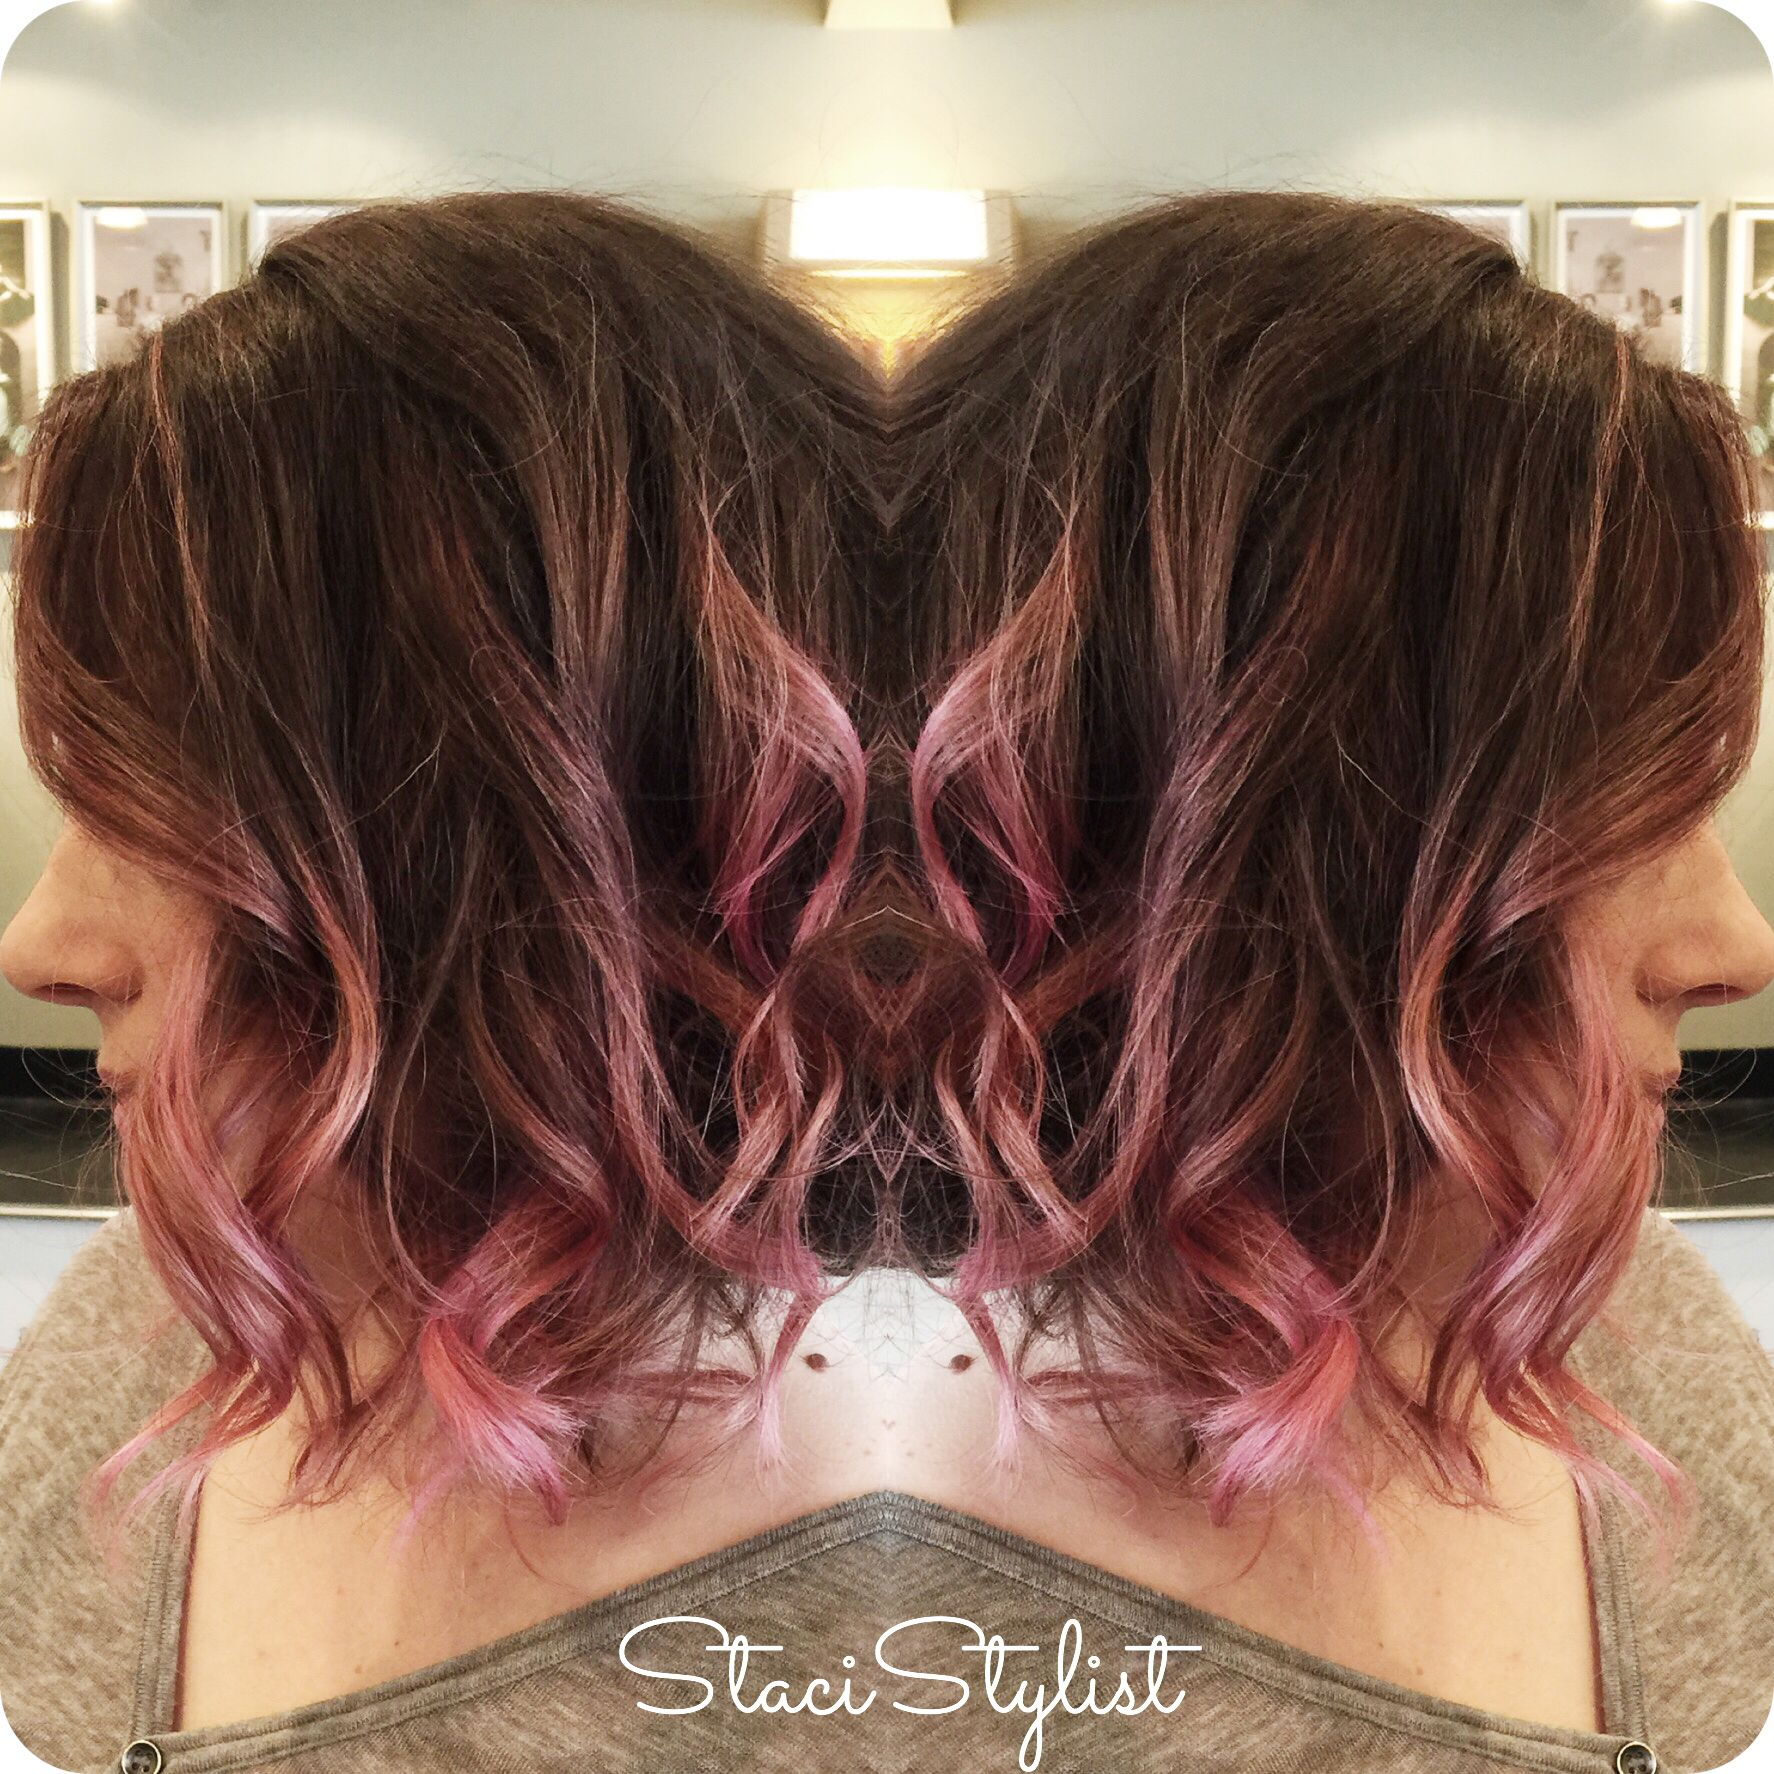 Ombre highlights go pink balayage babylights i do hair like the pink ive had it before but like the mix with the lighter color highlights pmusecretfo Images